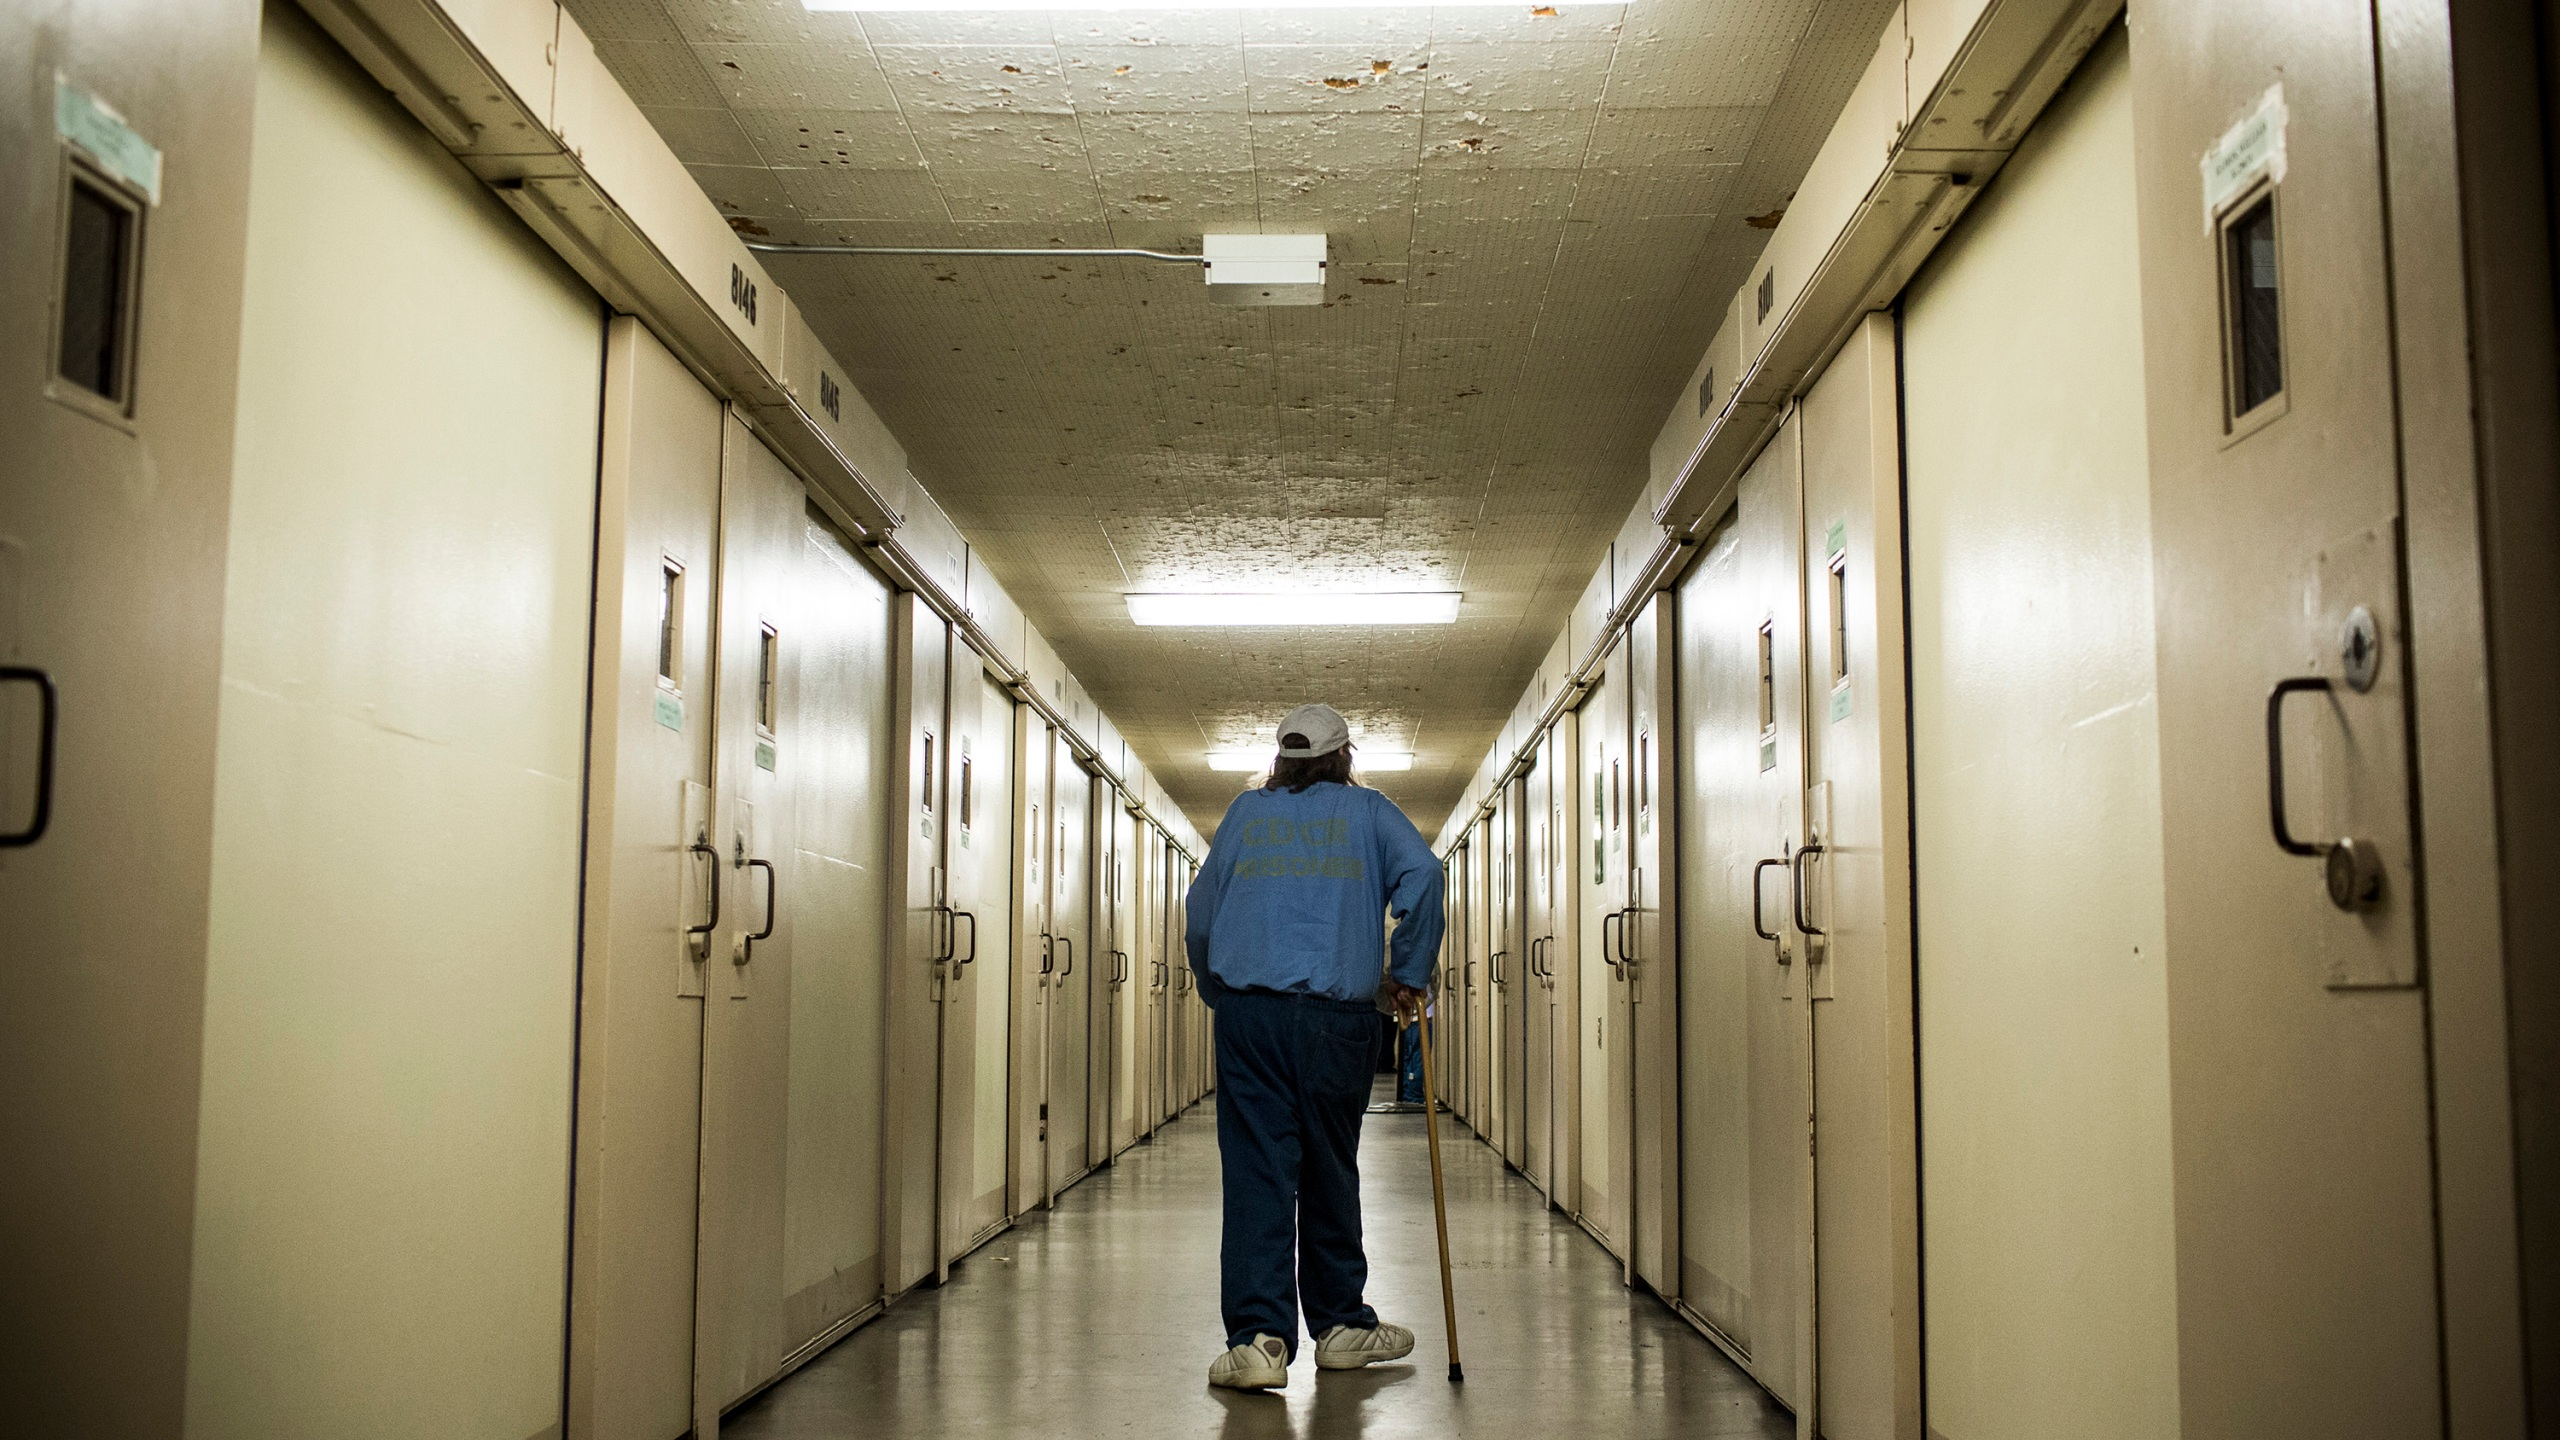 Frank Fuller, age 66, walks back to his prison cell after taking medication at California Men's Colony prison on Dec. 19, 2013, in San Luis Obispo, California. (Andrew Burton/Getty Images)